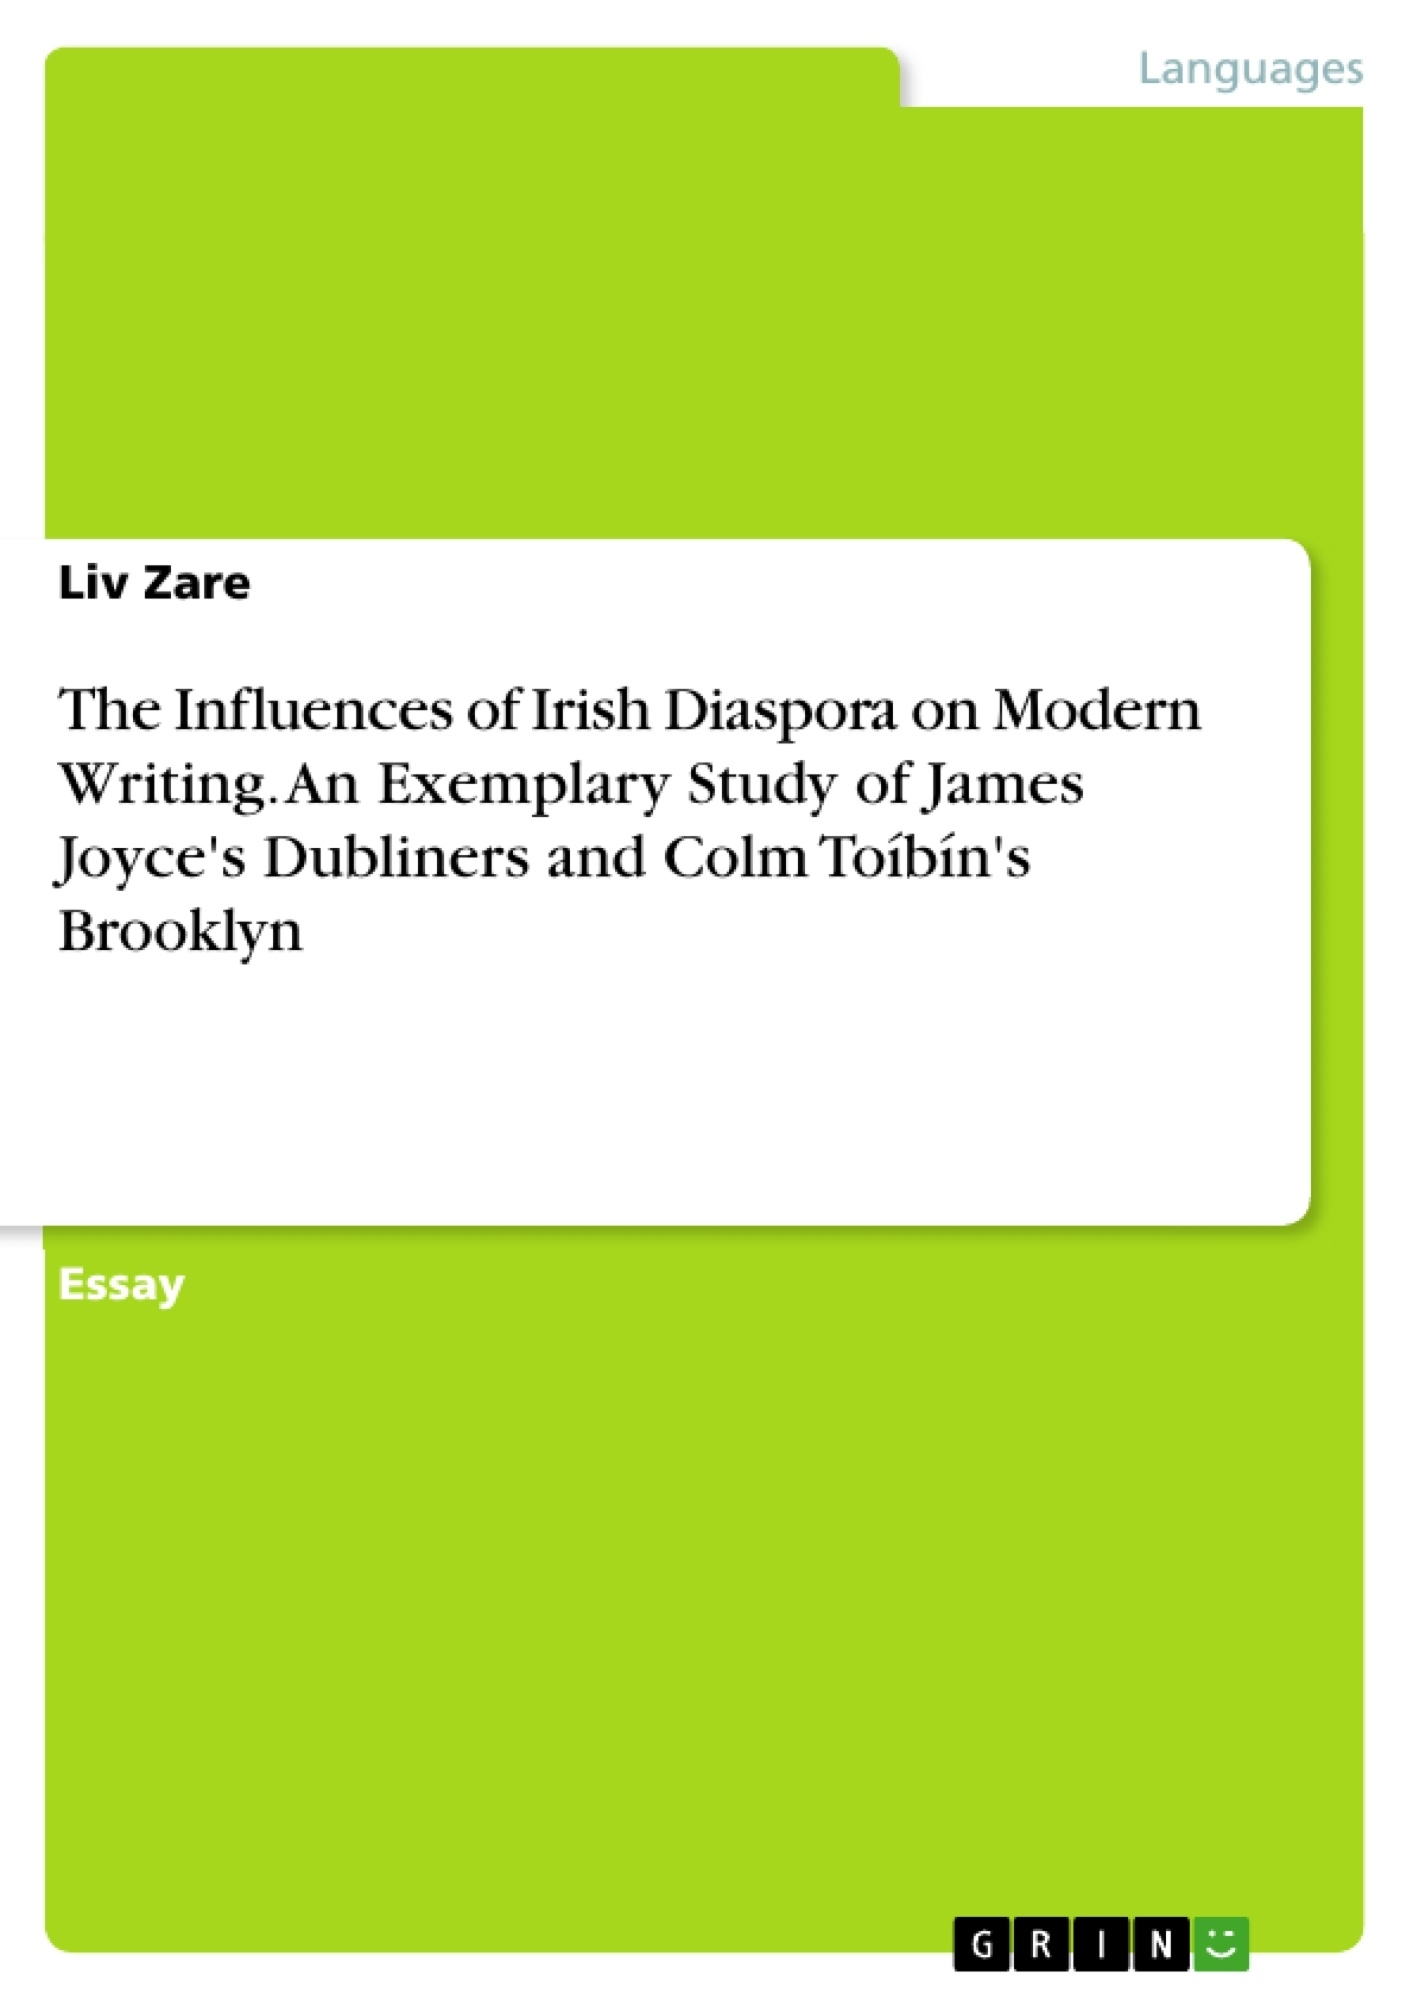 Title: The Influences of Irish Diaspora on Modern Writing. An Exemplary Study of James Joyce's Dubliners and Colm Toíbín's Brooklyn